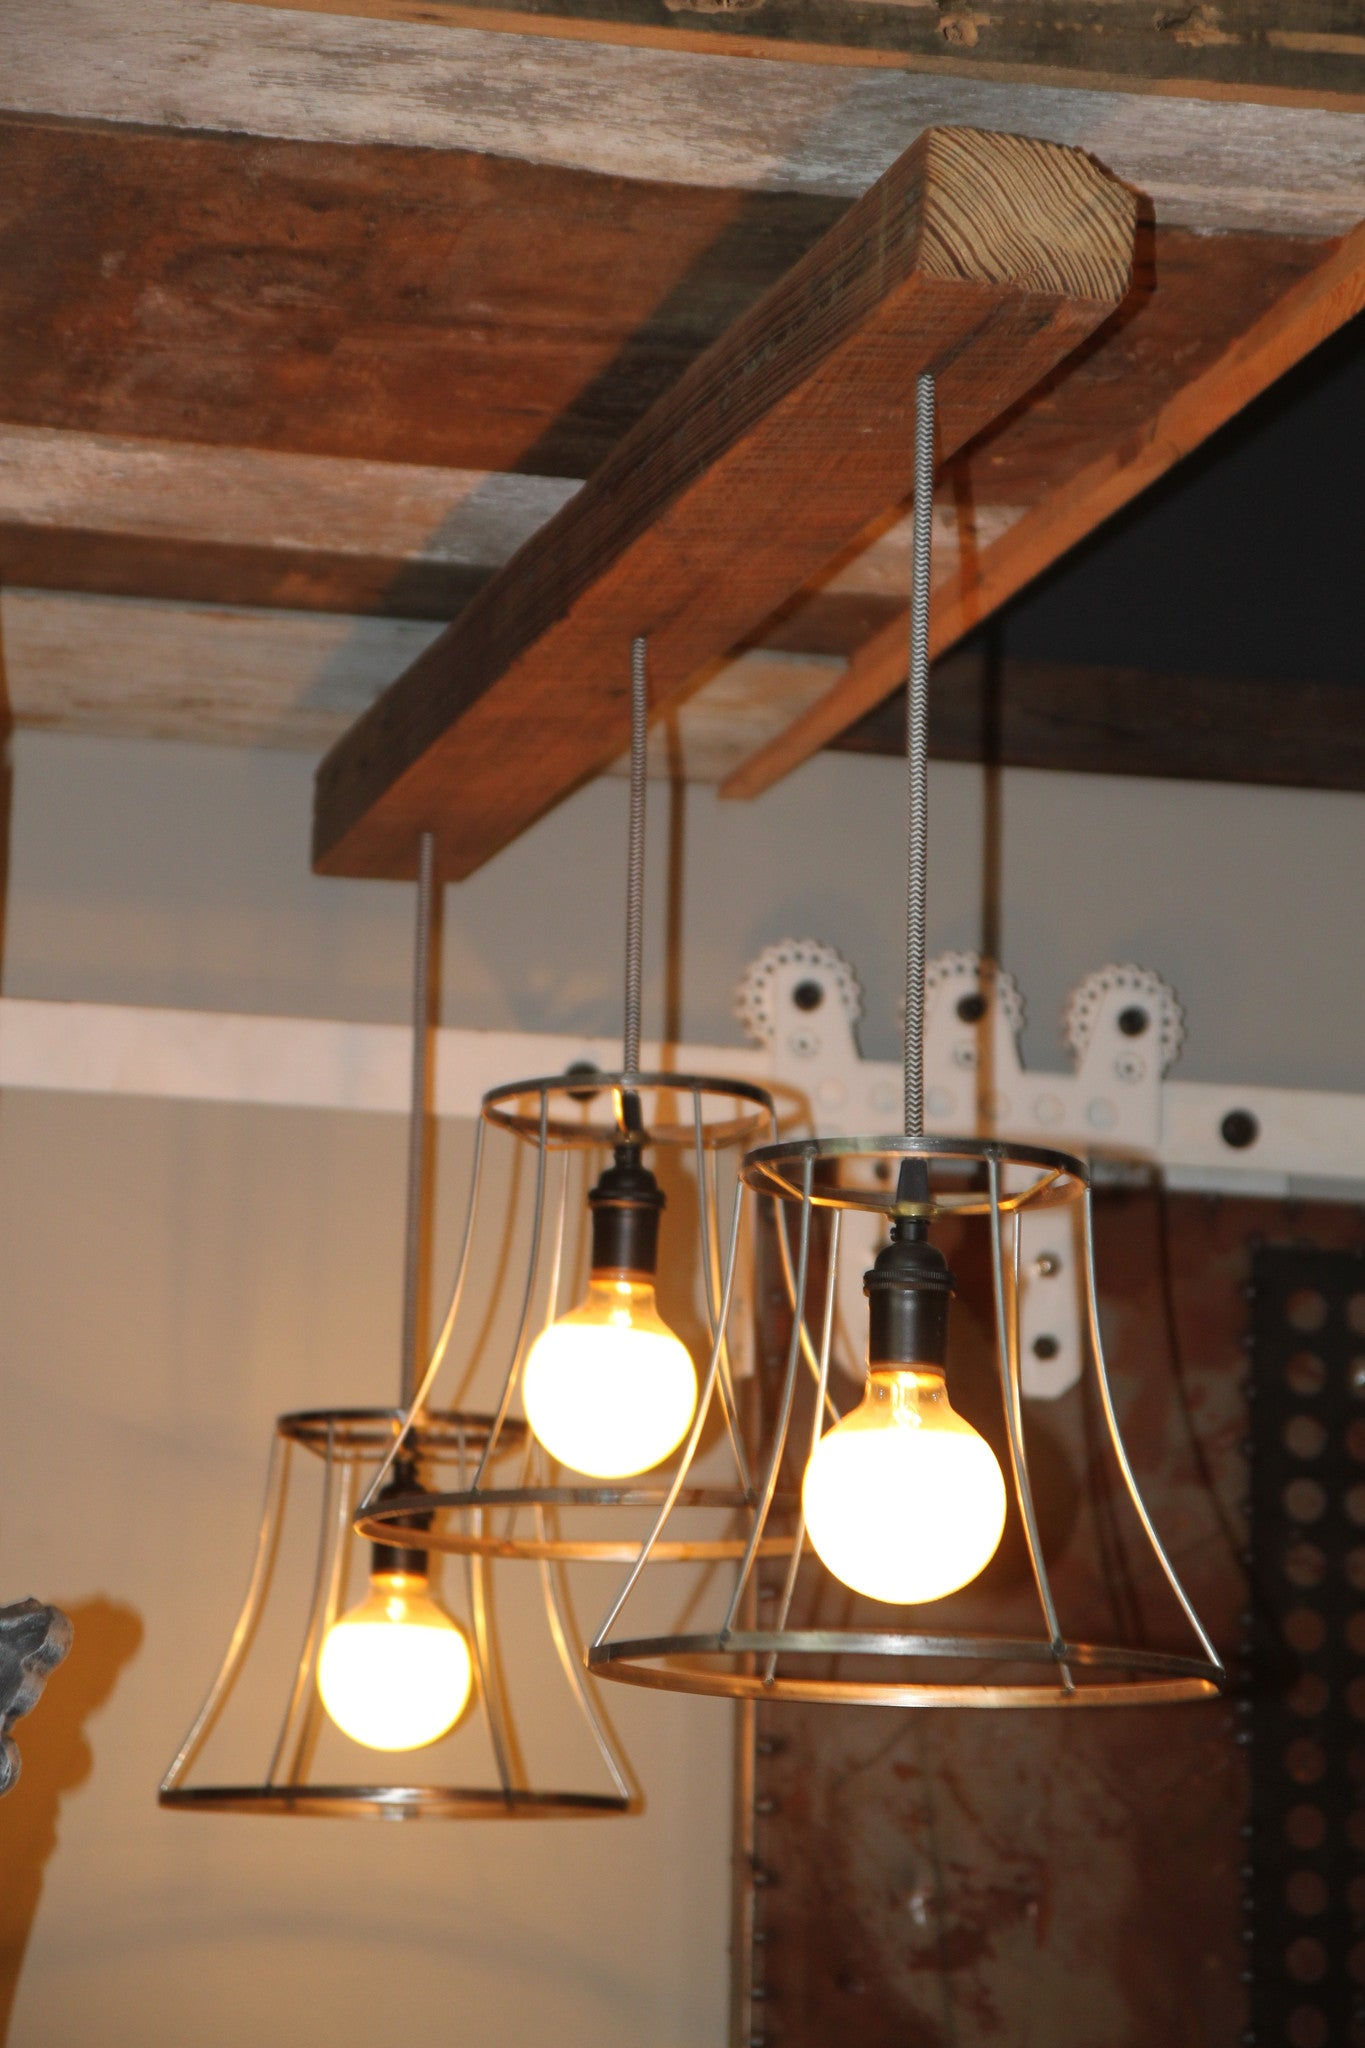 Vintage Shades on a Reclaimed Wood Beam Light Chandelier Funk & Junk